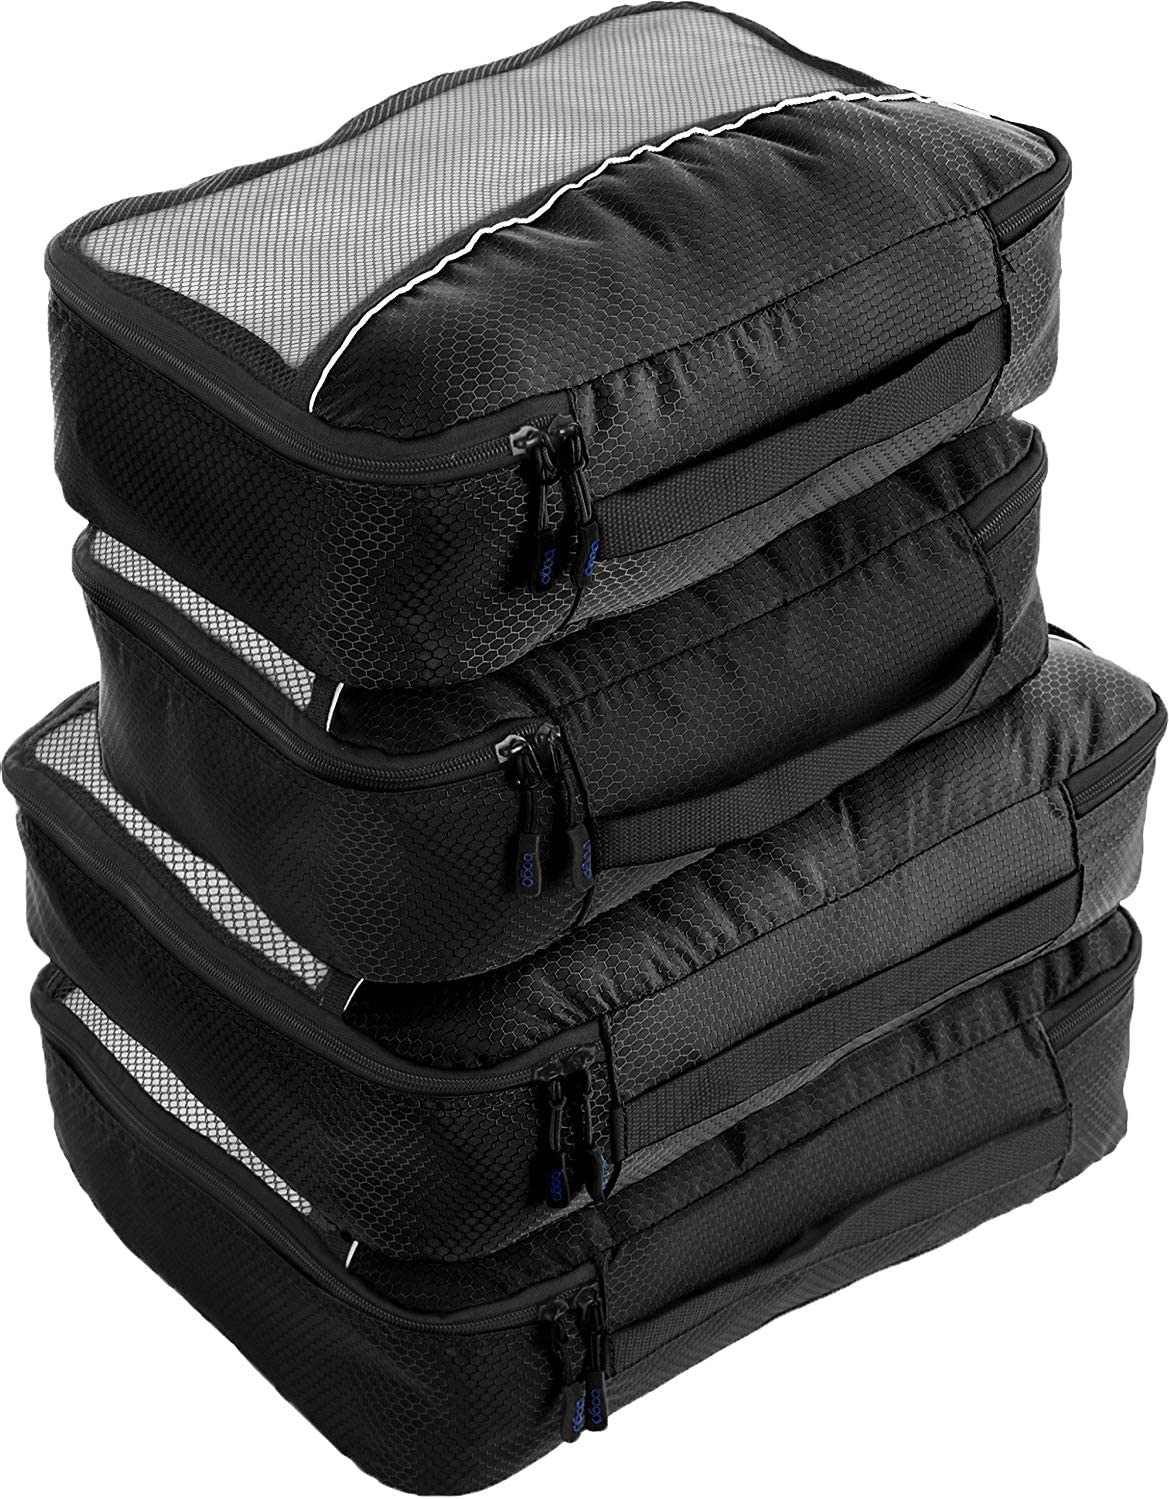 7 Set Packing Cubes-Large Capacity Travel Luggage Organizers with Shoe Bag /& Toiletry bag-Cobaltblue